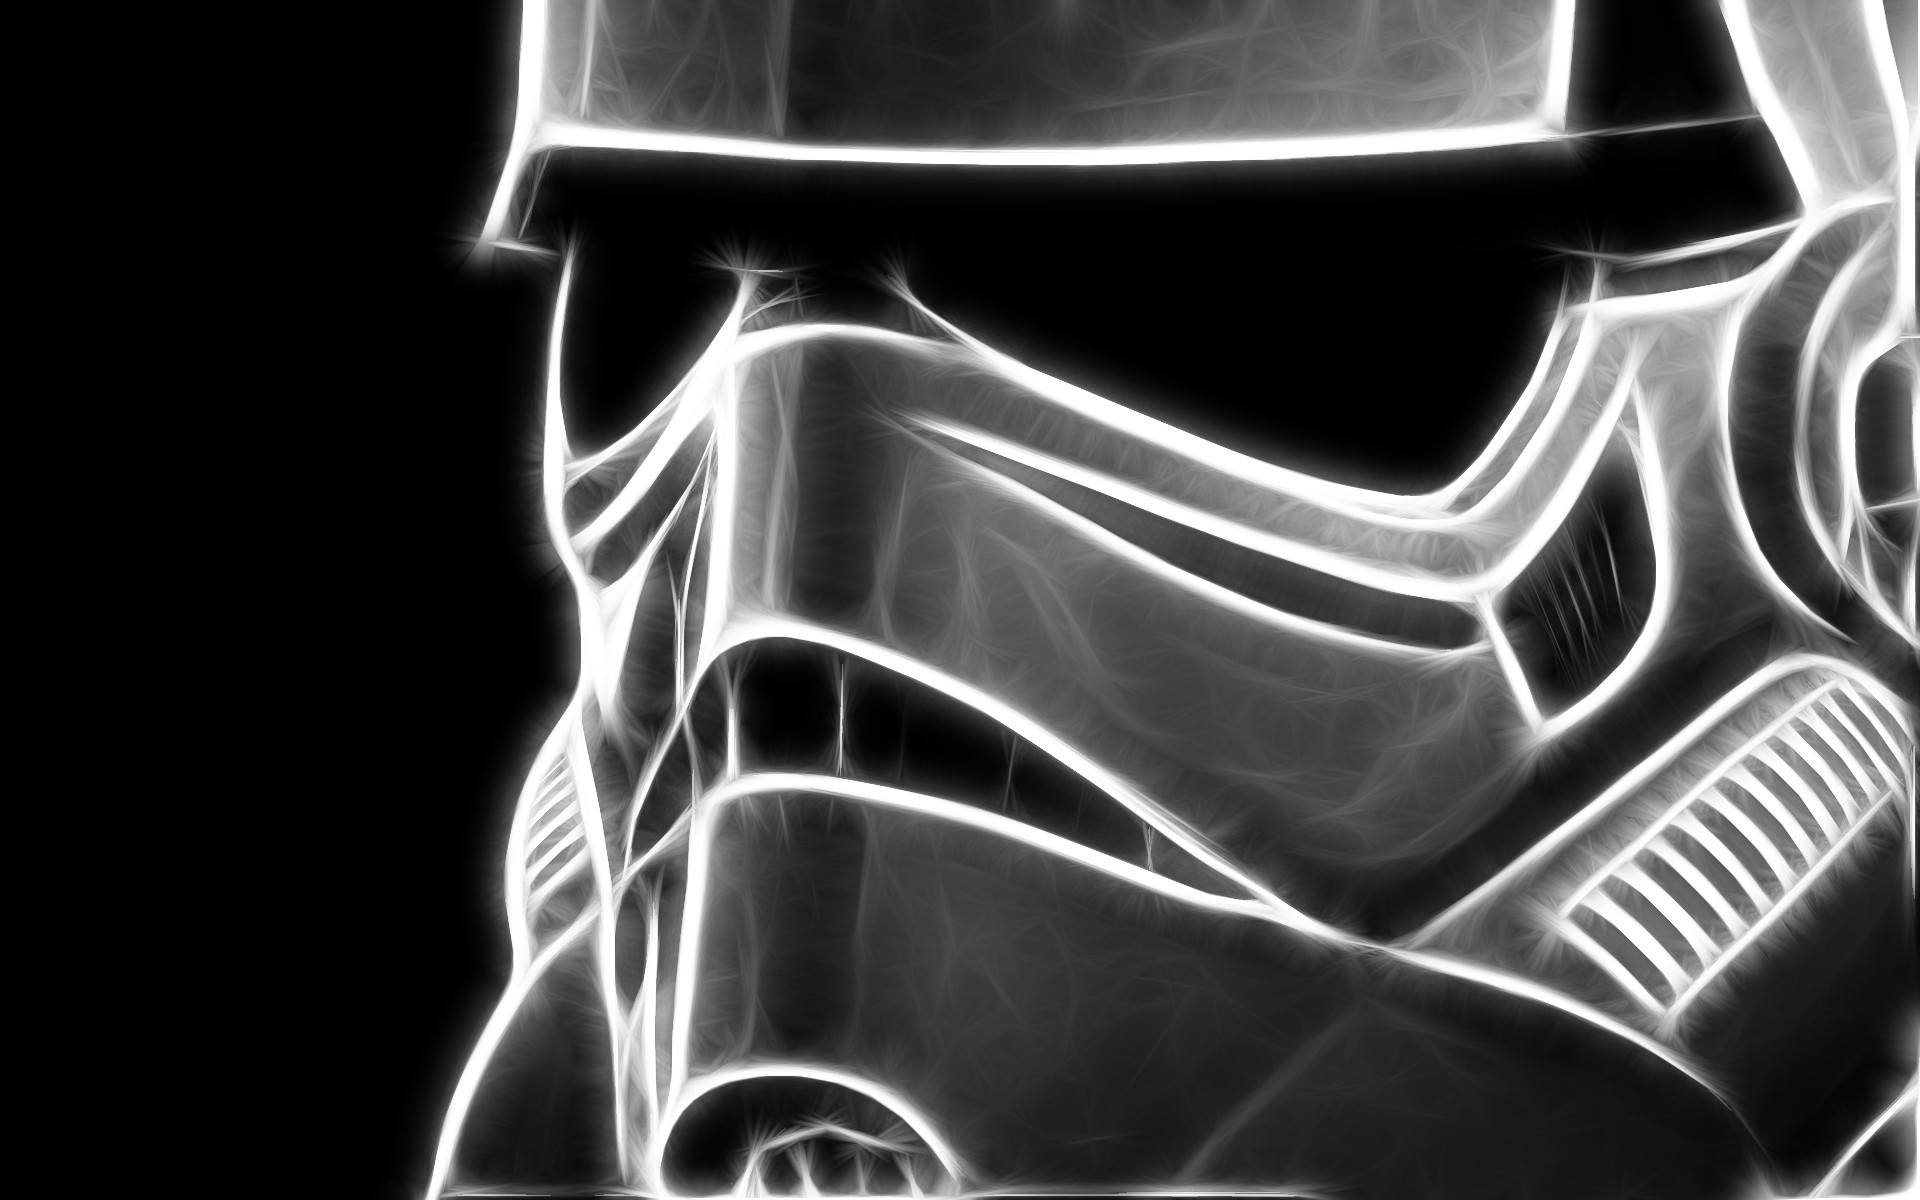 1920x1200 Star Wars Stormtroopers Mask Wallpapers HD